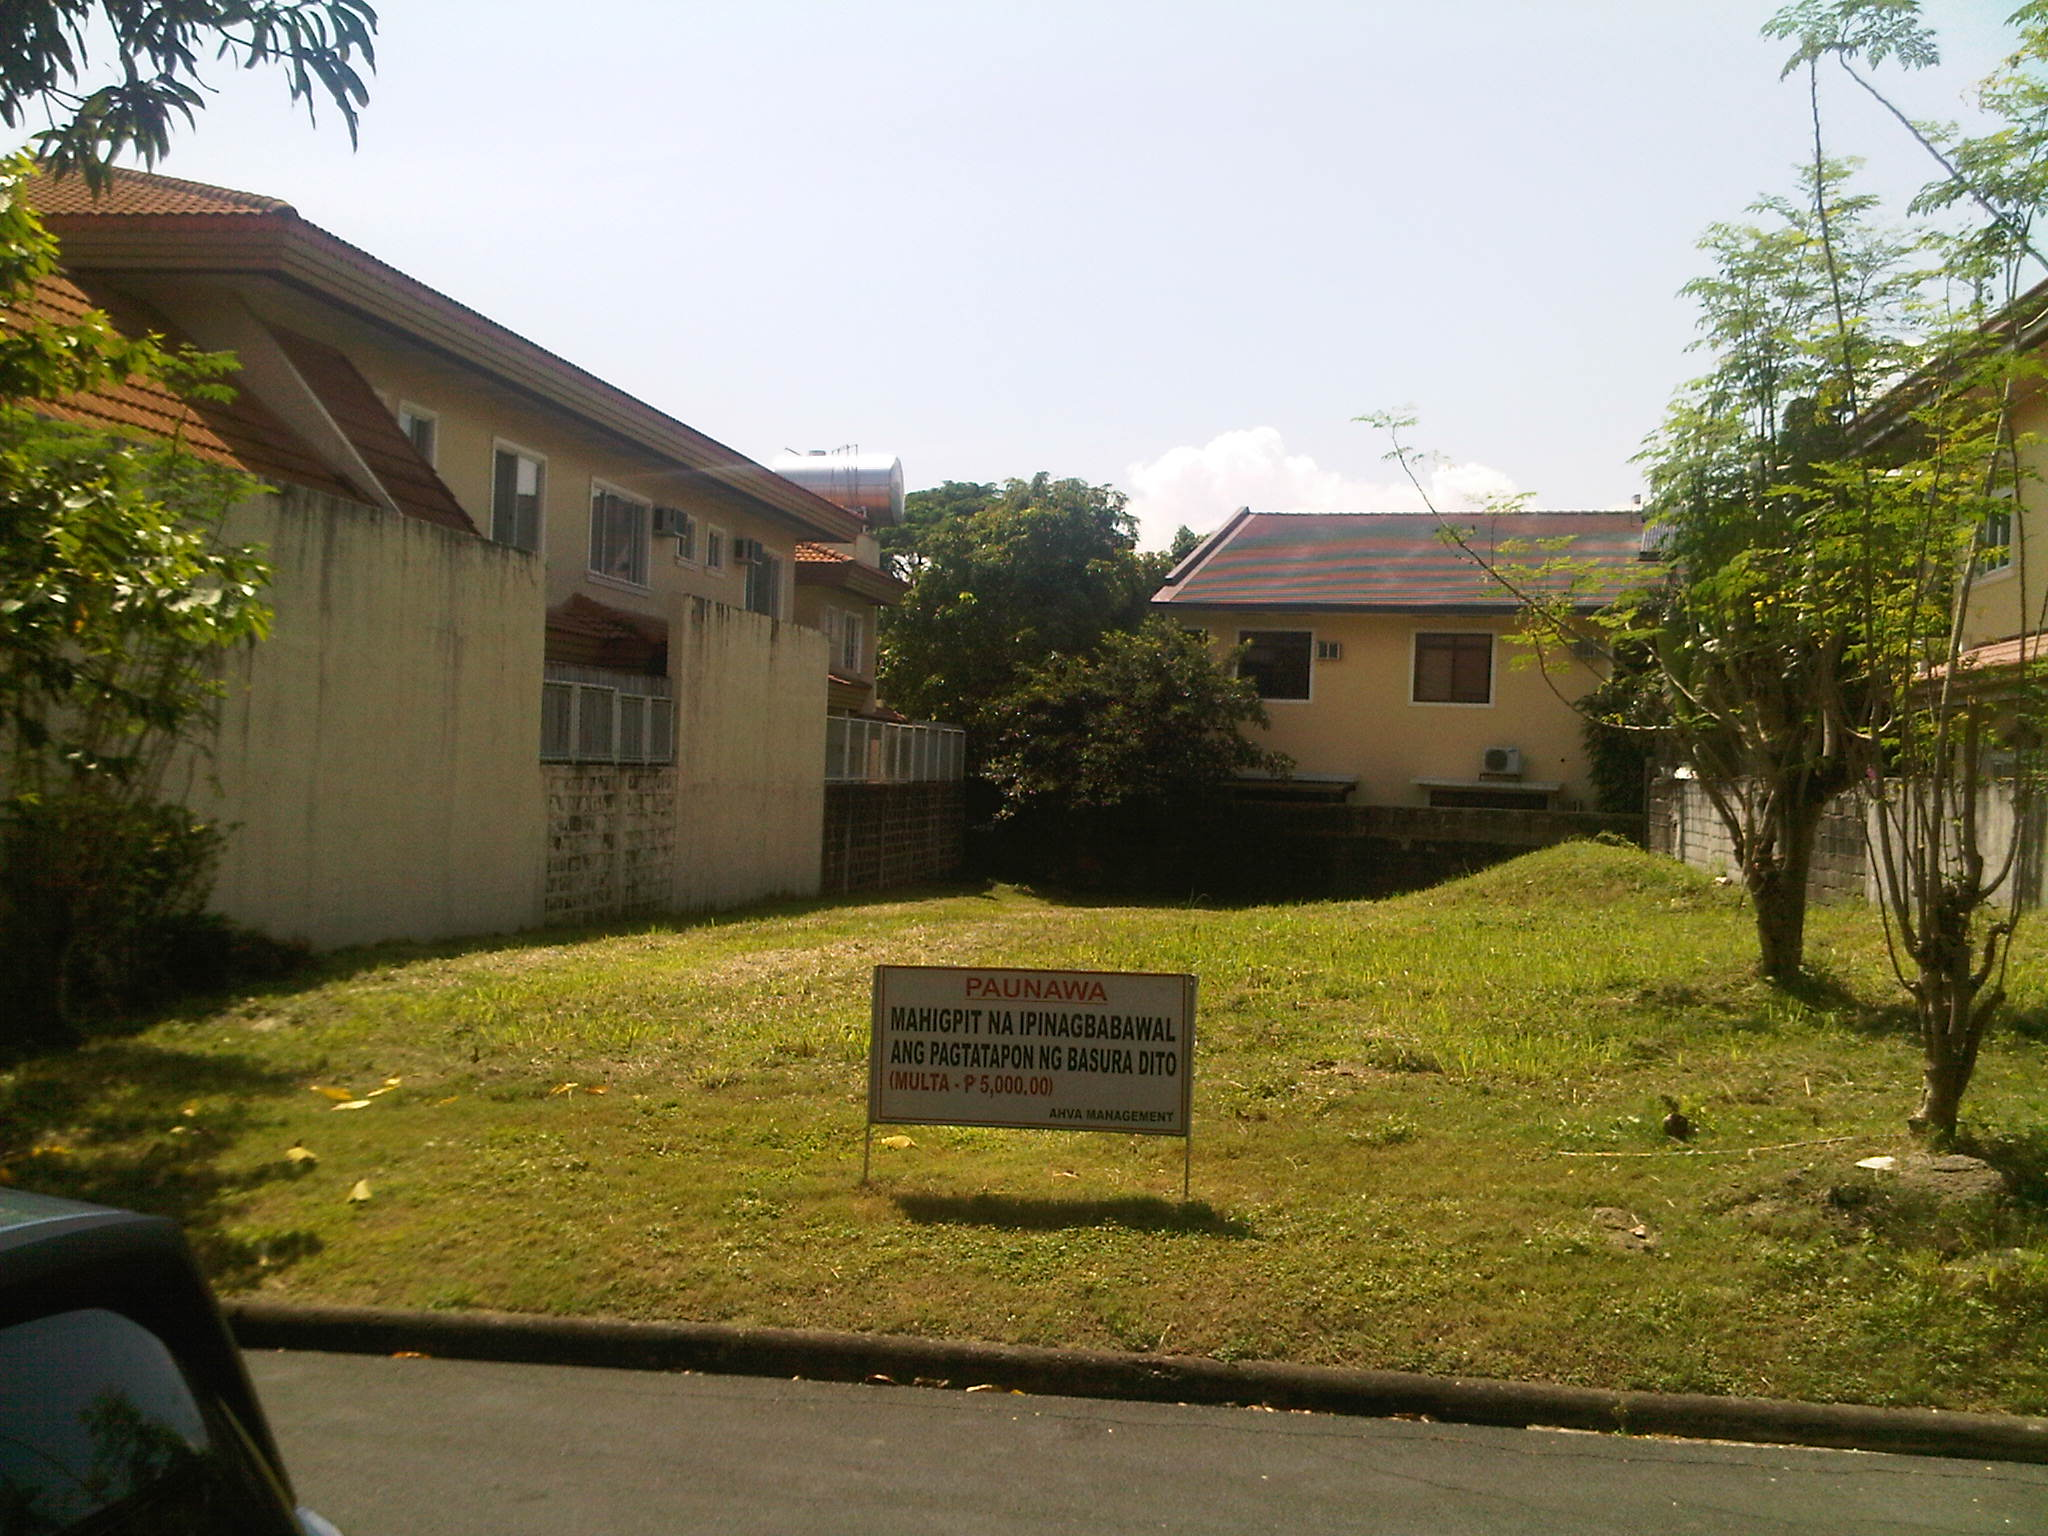 FOR SALE: Lot / Land / Farm Manila Metropolitan Area > Muntinlupa 0